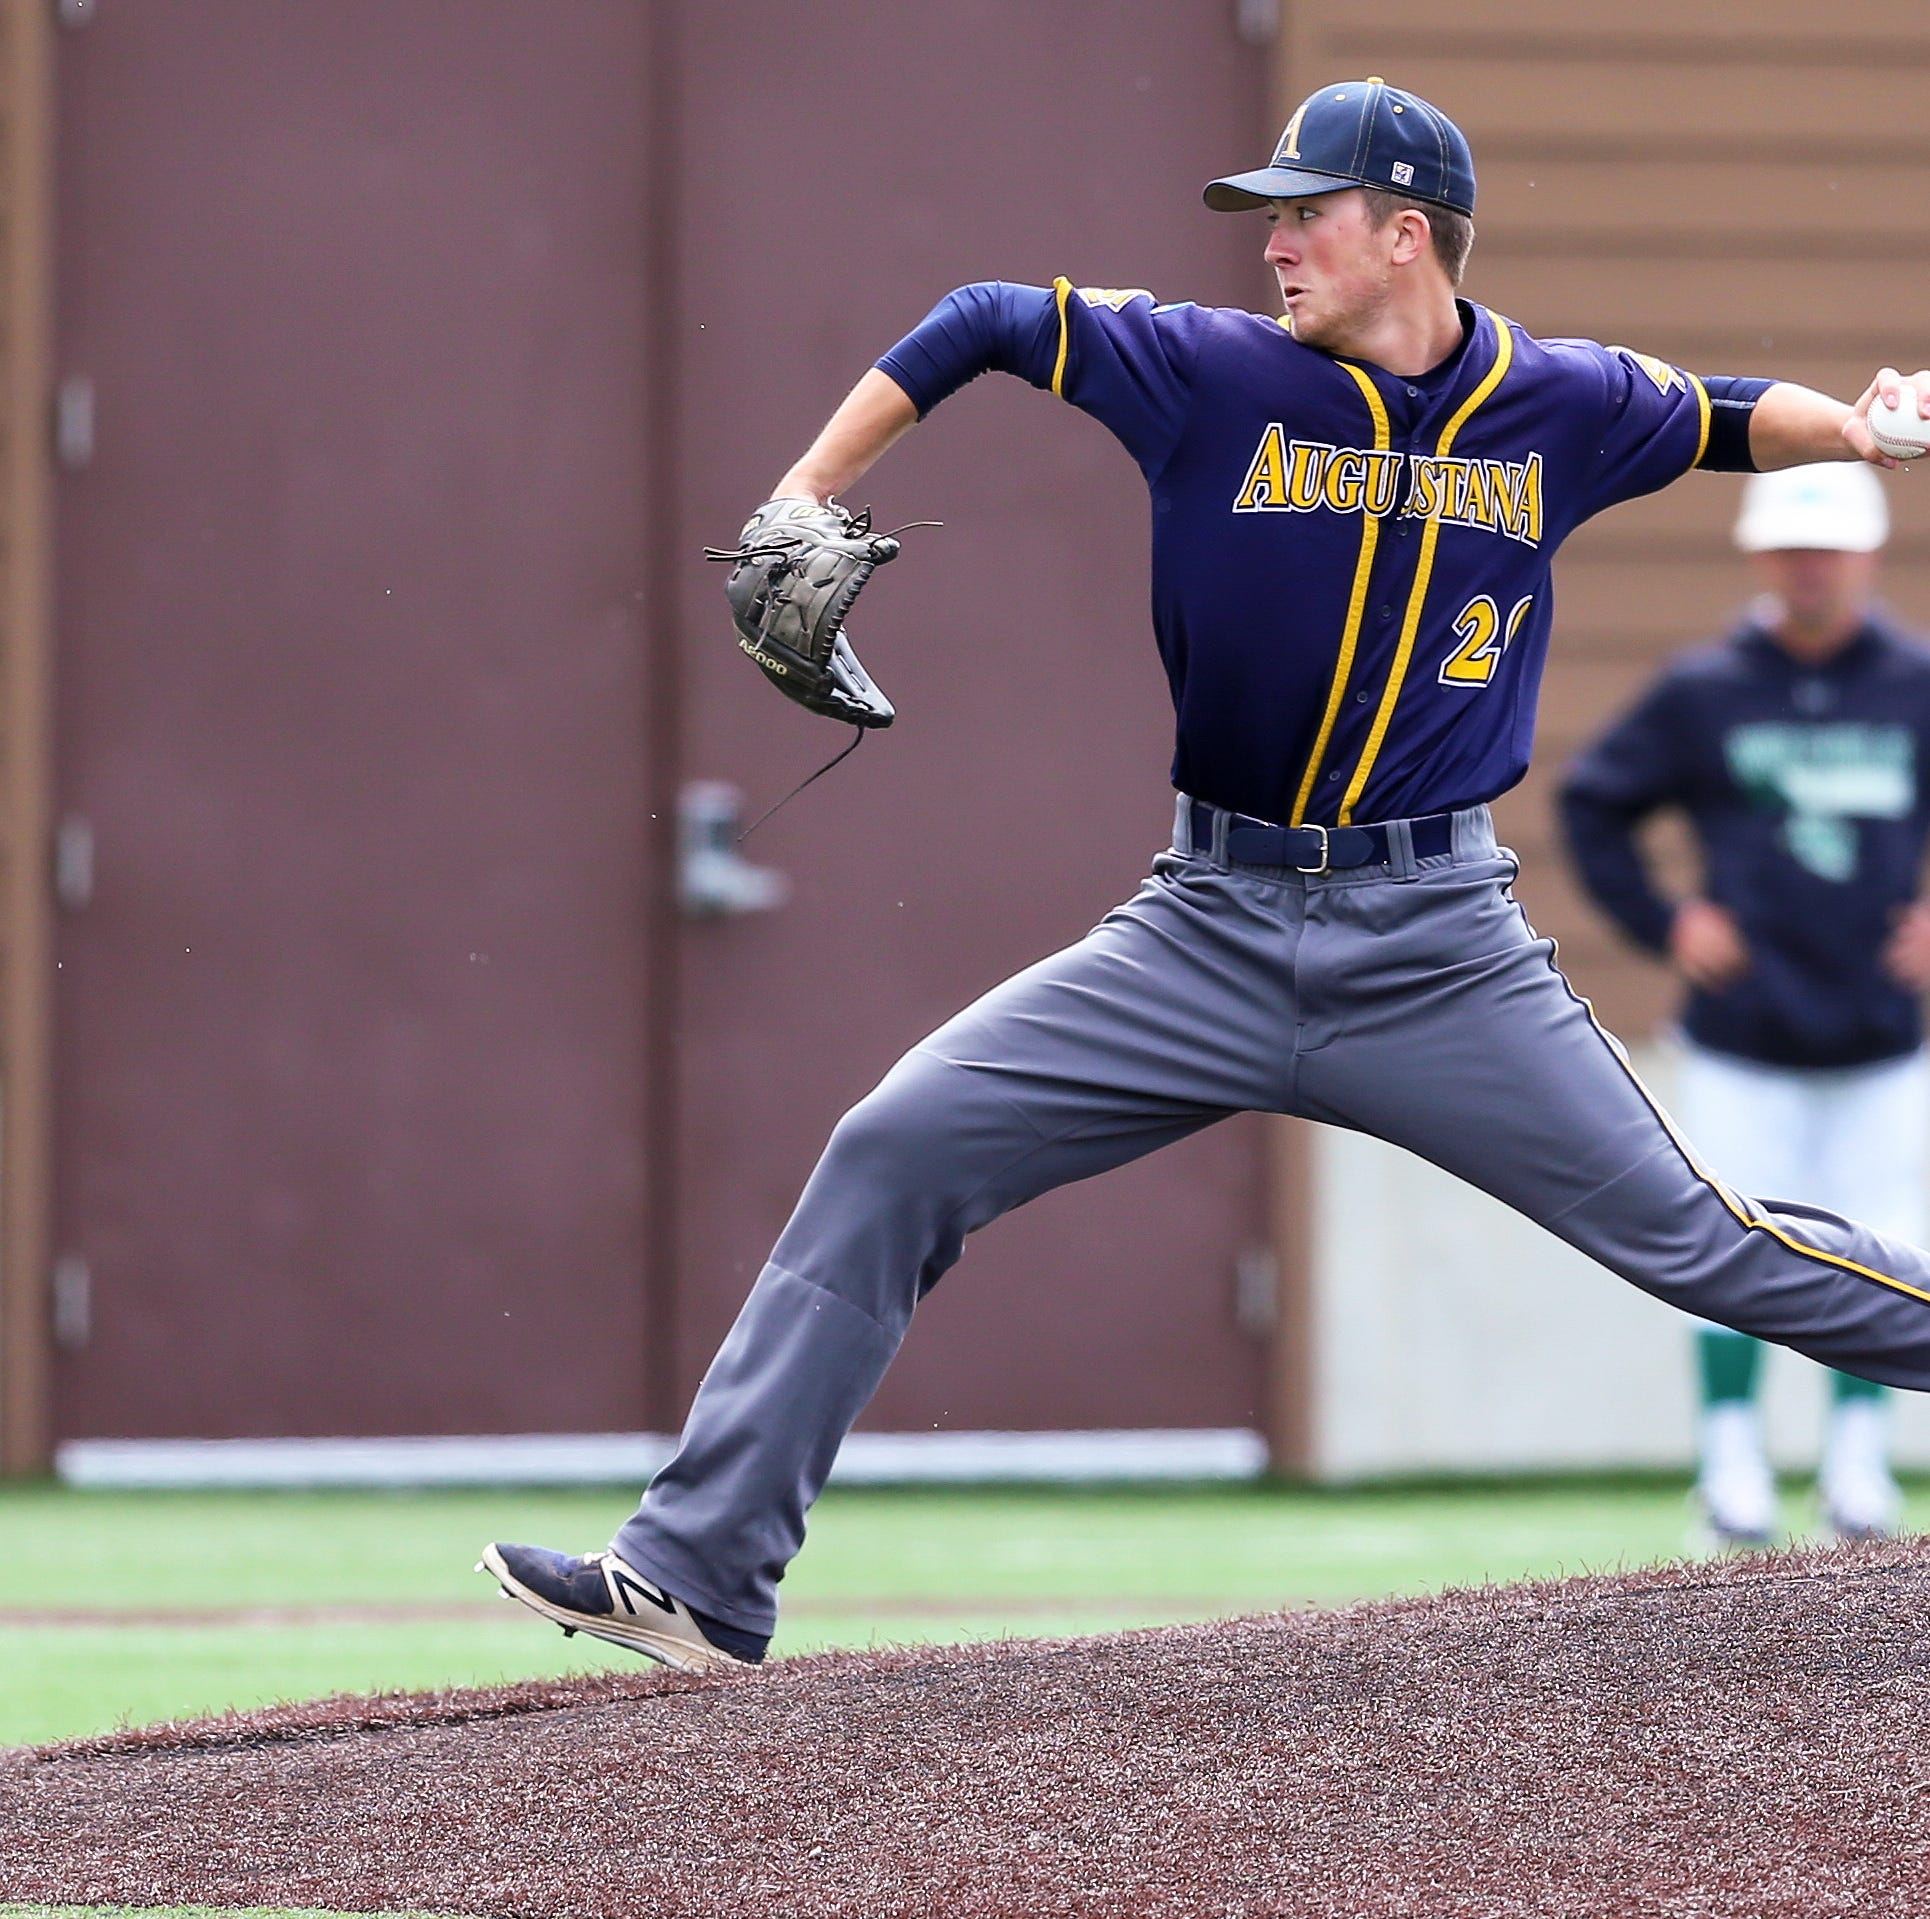 Augustana baseball team advances to regional championship